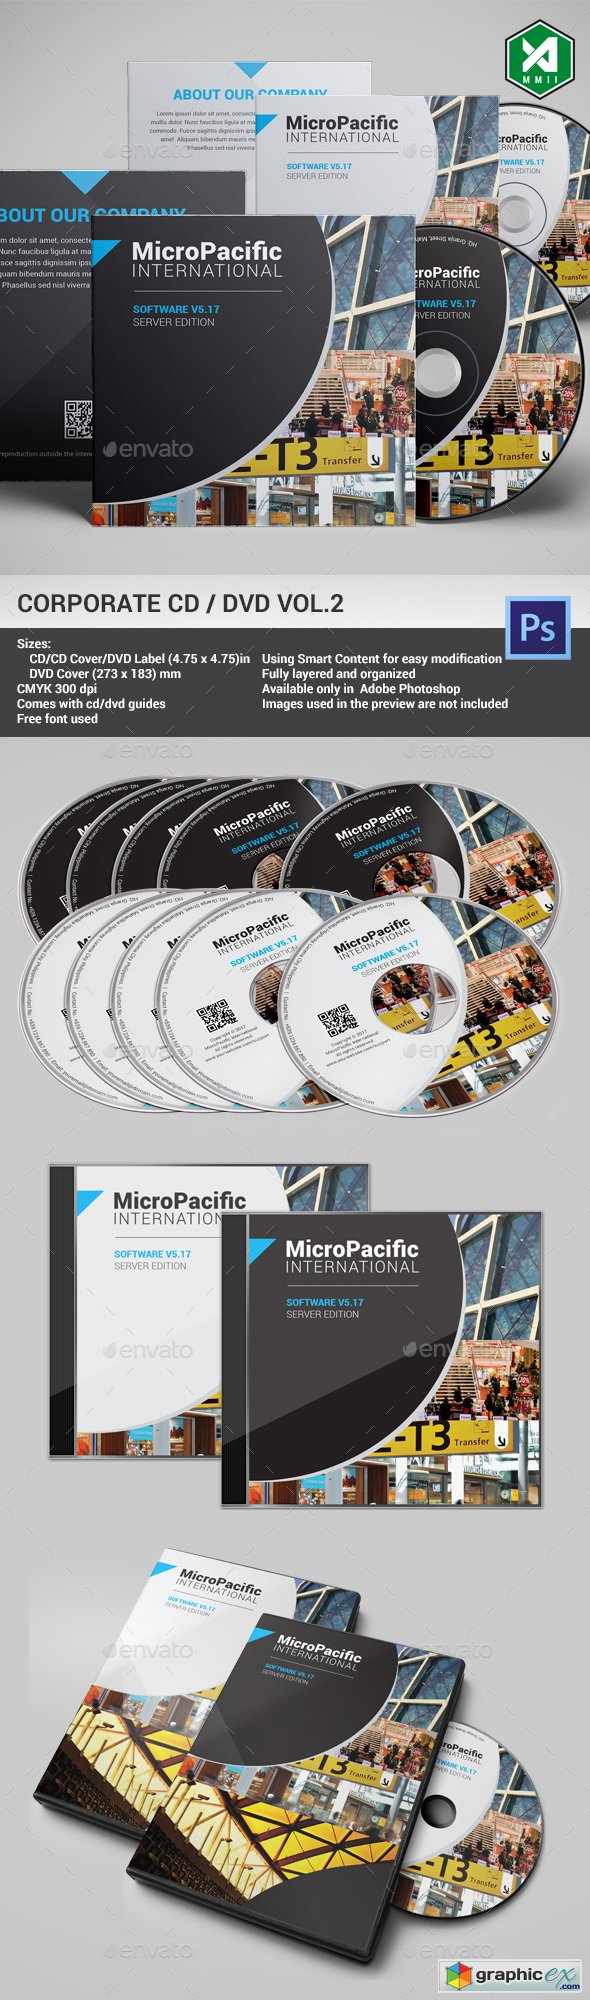 Corporate CD DVD Template Vol.2